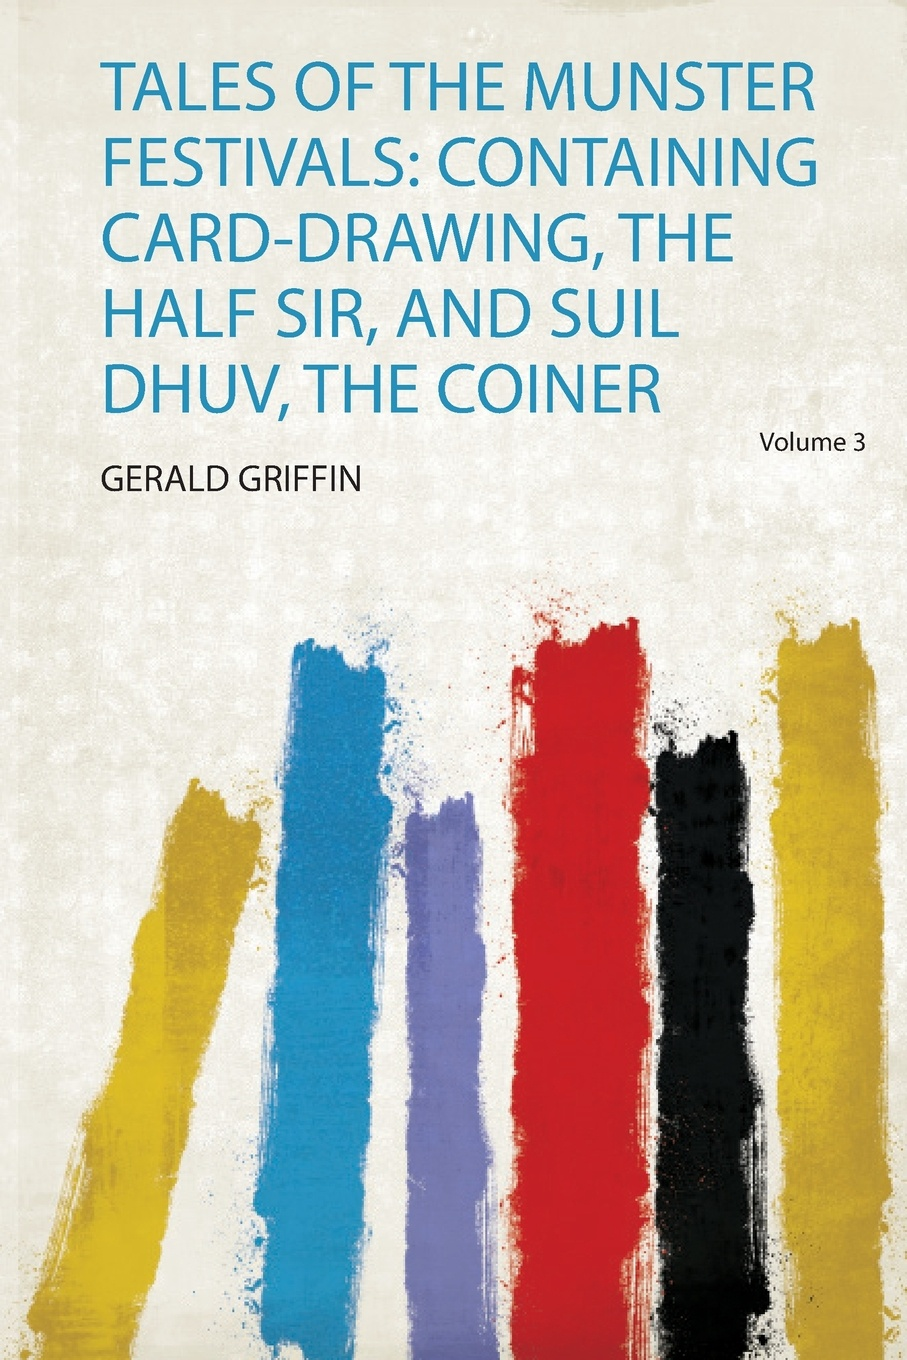 Tales of the Munster Festivals. Containing Card-Drawing, the Half Sir, and Suil Dhuv, the Coiner